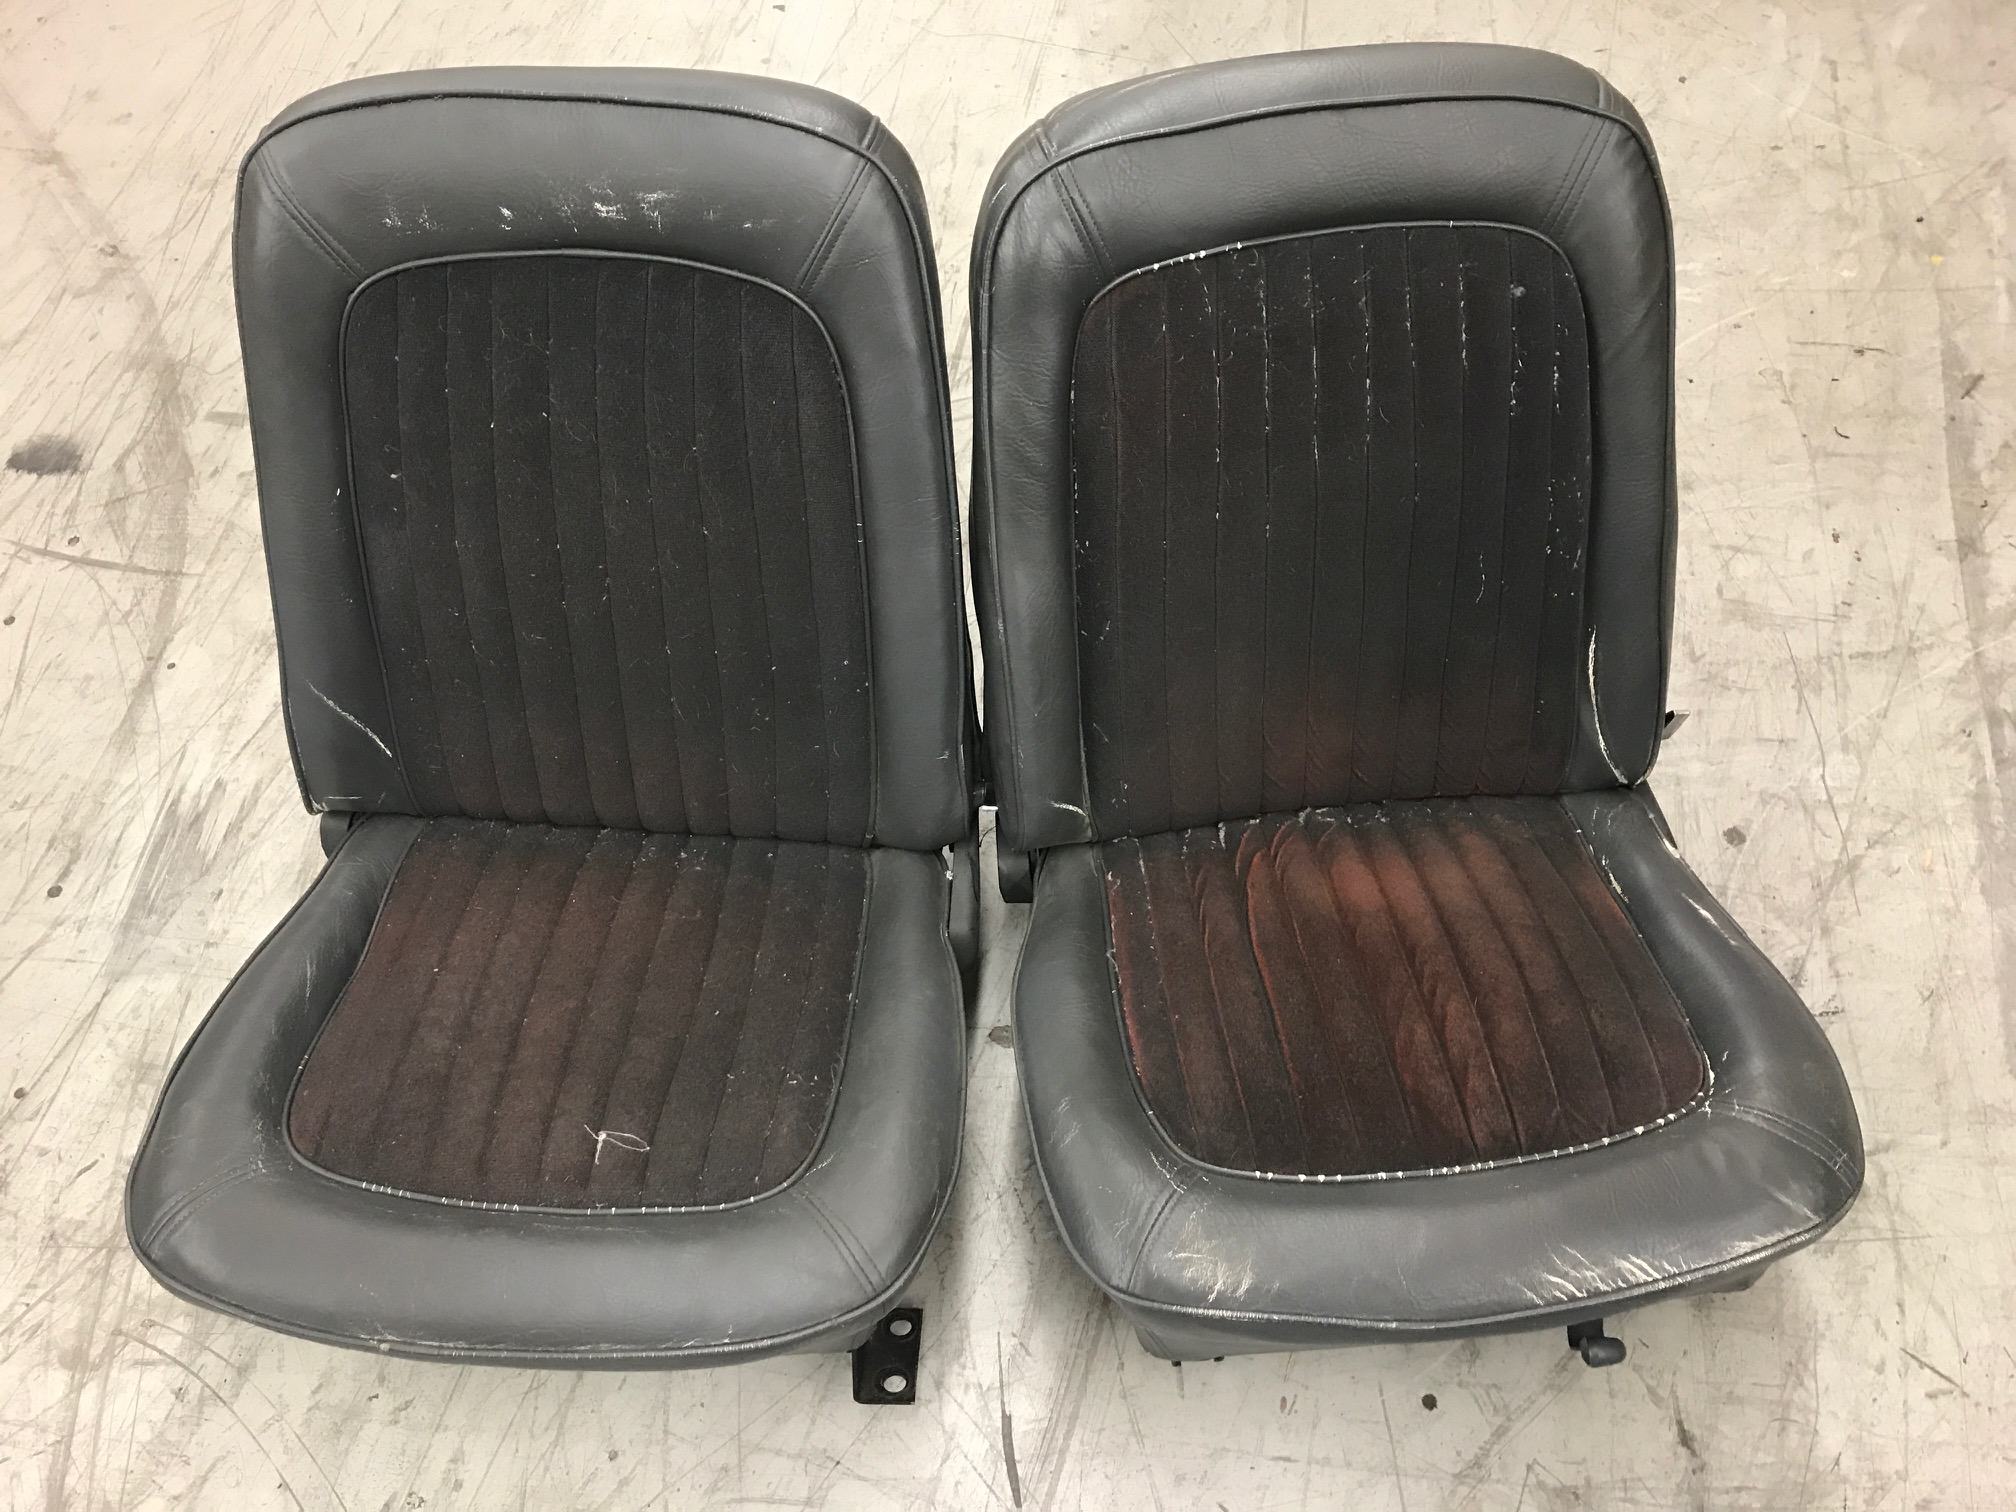 OEM Style Front Bucket Seats w/ Mounting Brackets, Pair, Used, 66-77 Early Ford Bronco